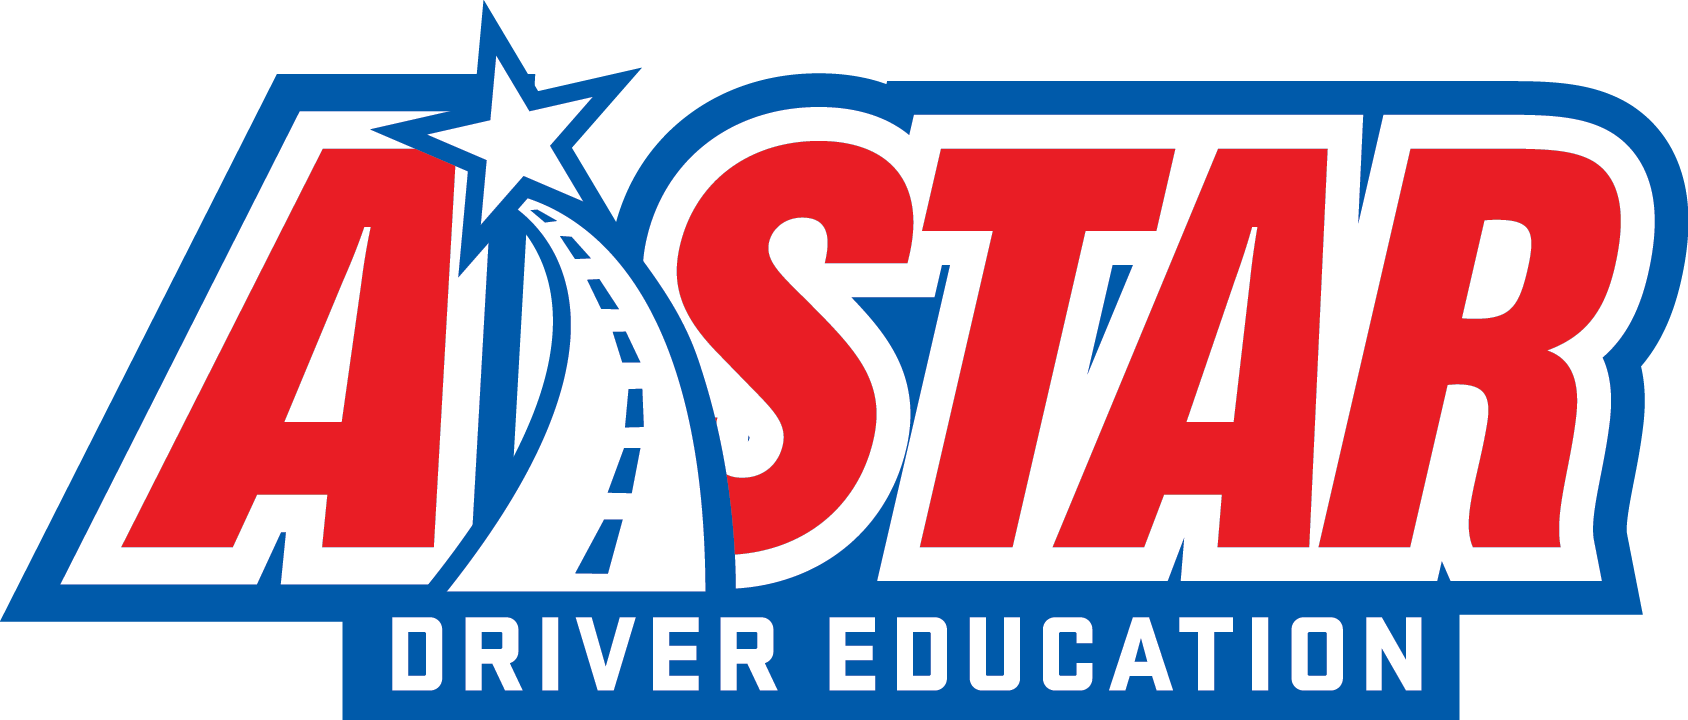 All Star Driver Education Online